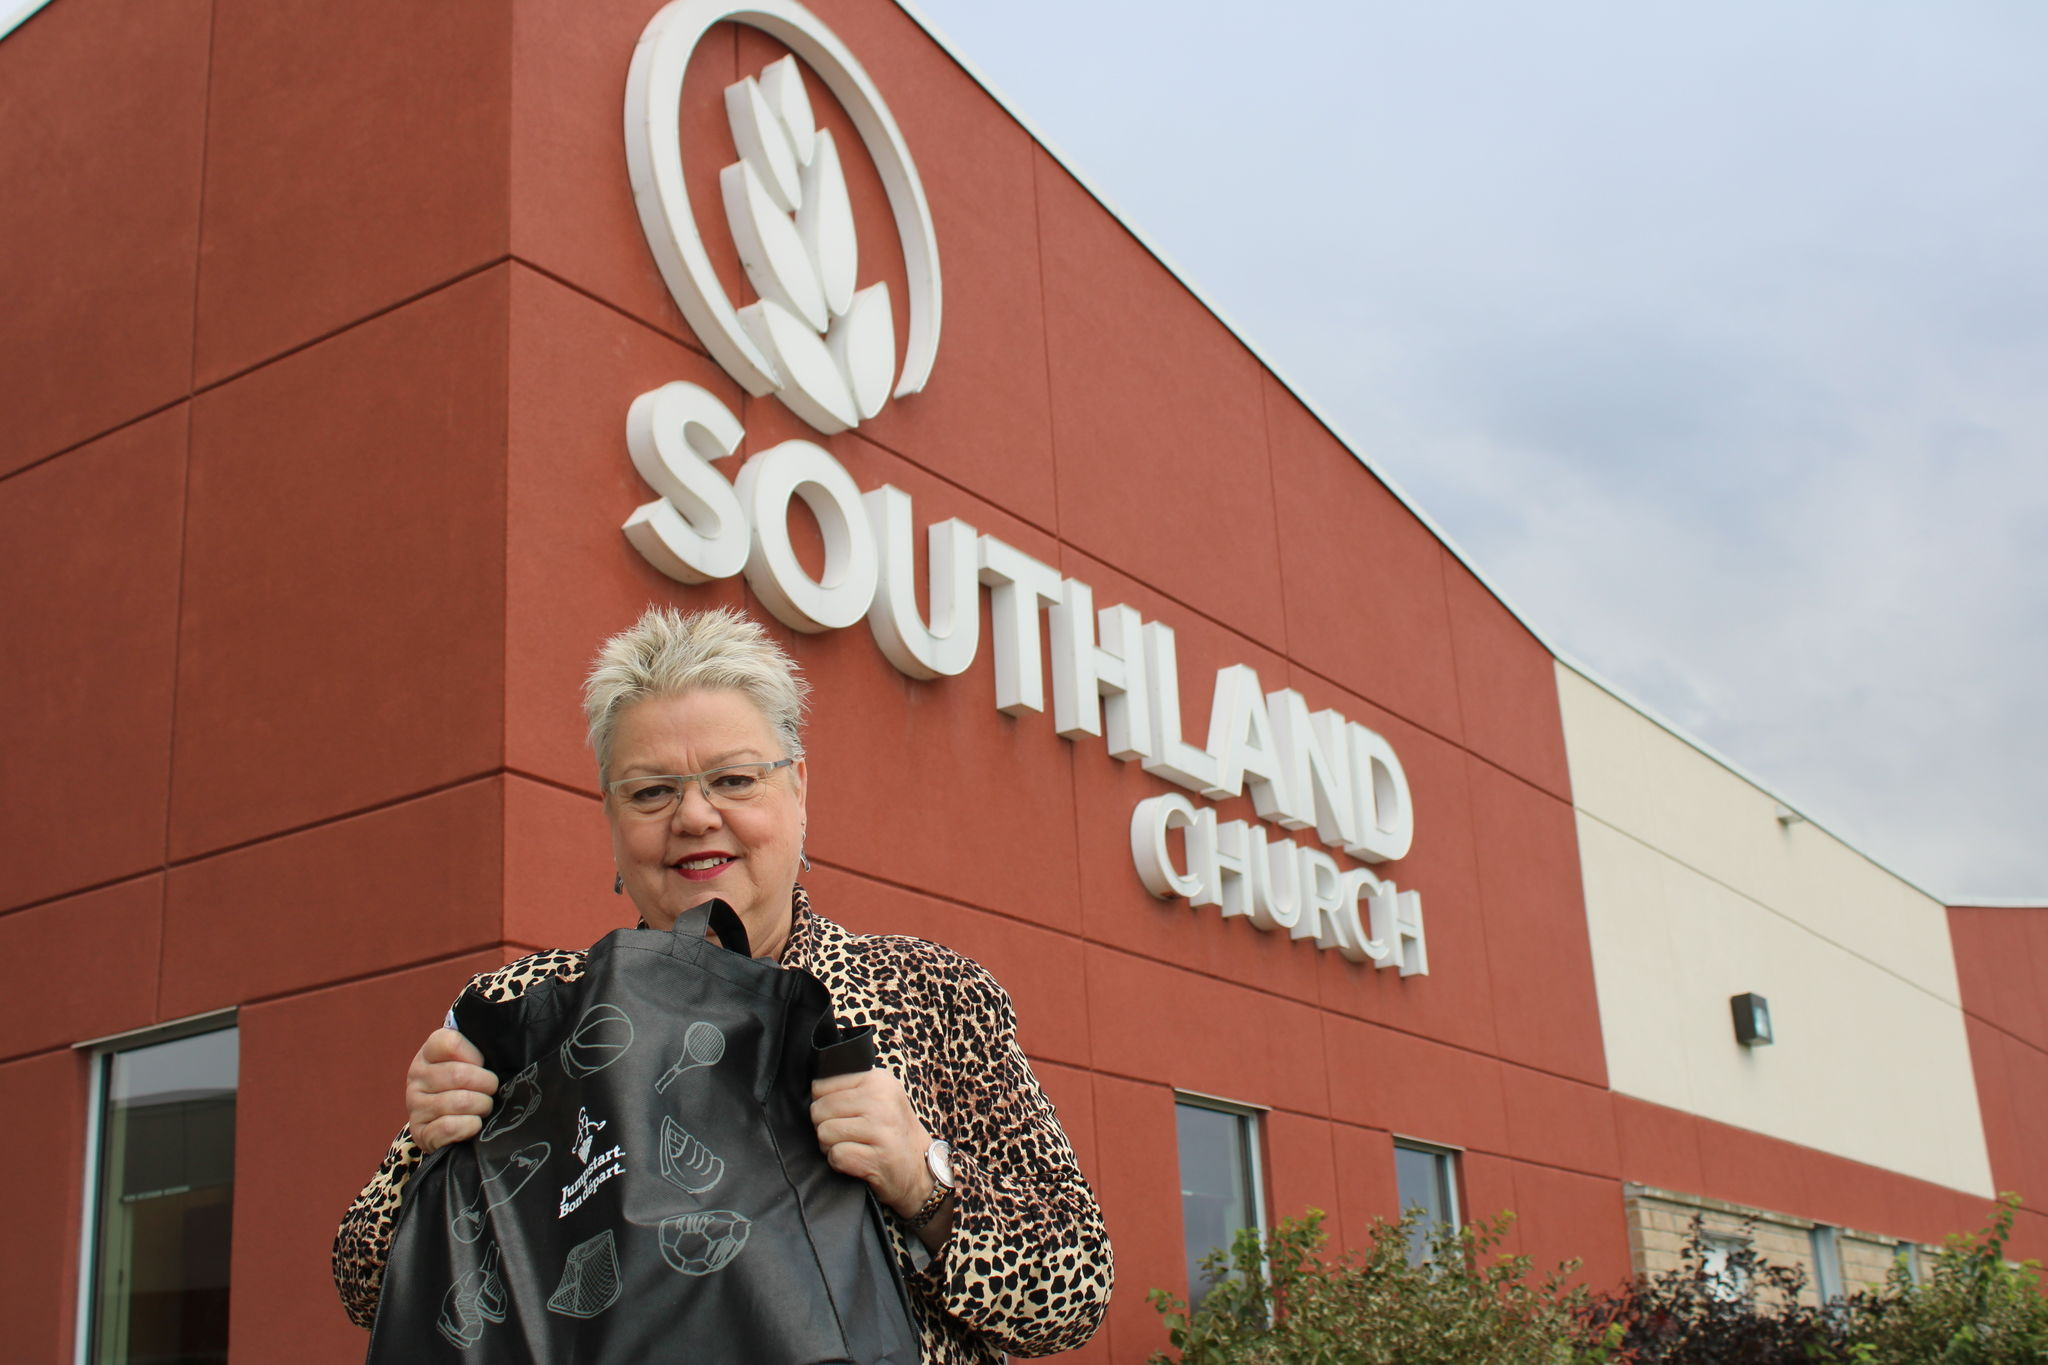 Southland Church Seniors Ministry Pastor and organizer of the Thanksgiving Food Drive, Grace Hiebert, holds a bag containing part of a hamper that will be given out Oct. 16. Fresh items such as fruit and bread will be added to the bags.